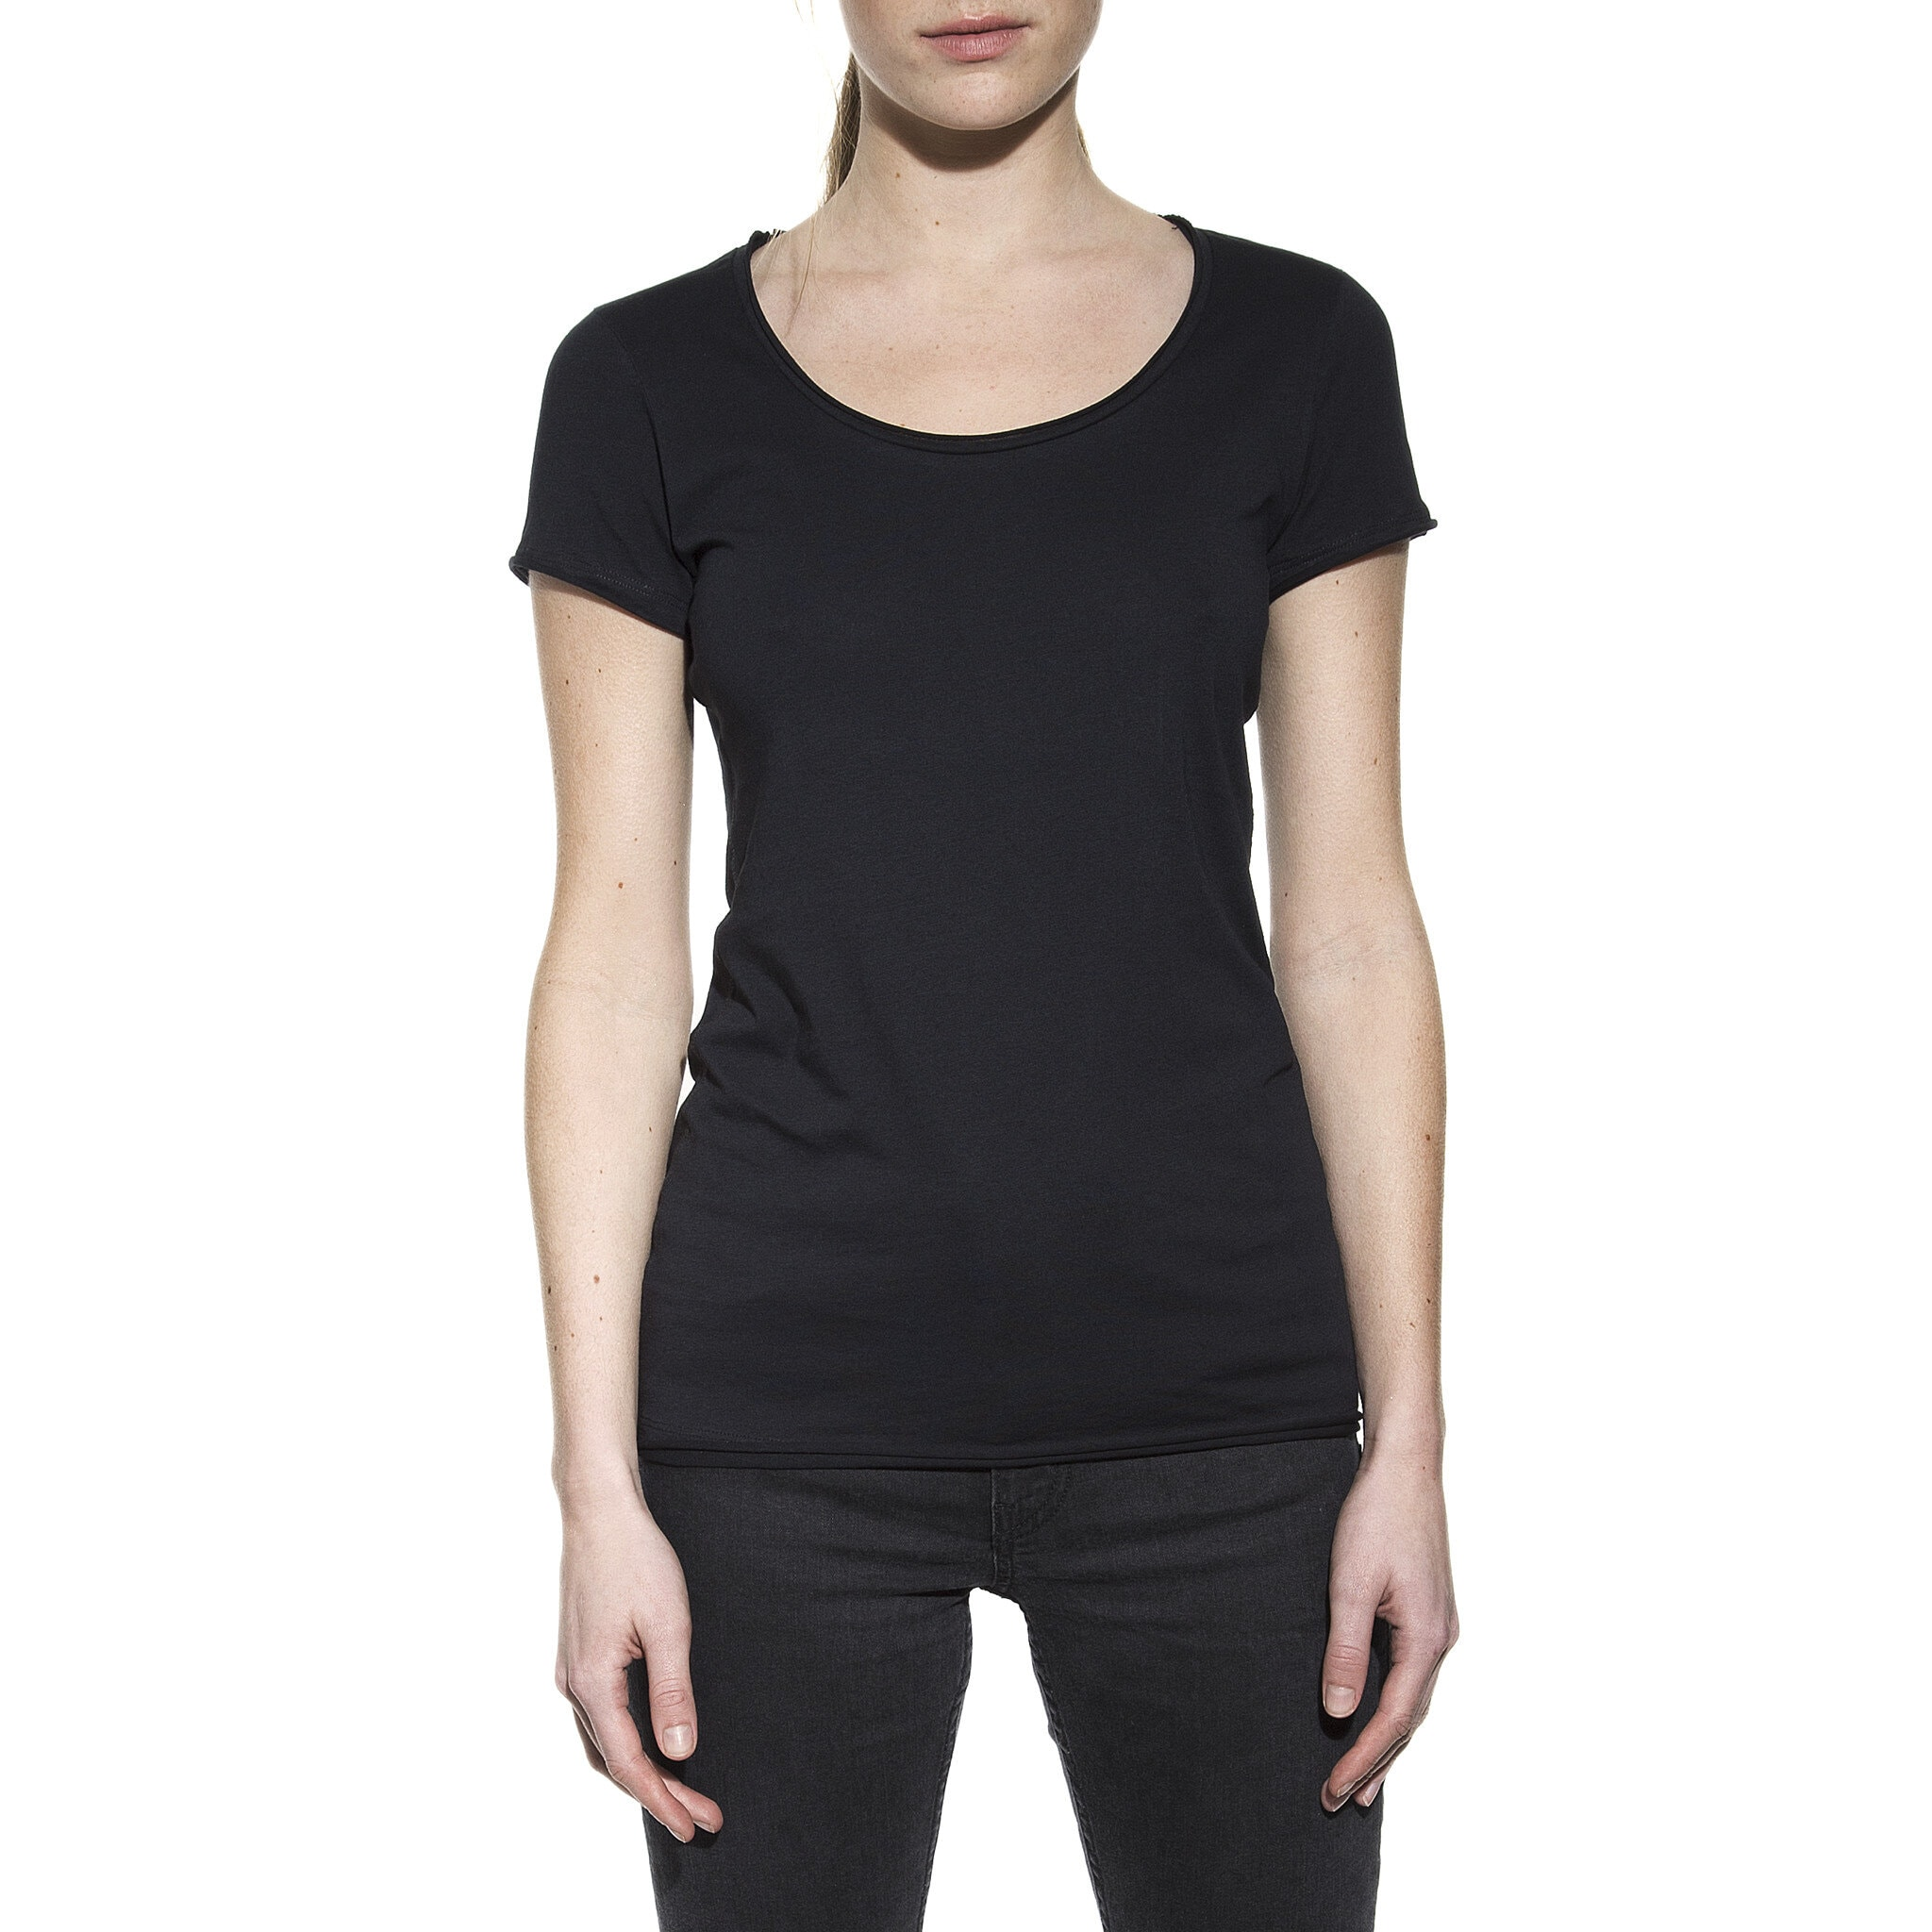 603102_Woman_Crew-Neck_relaxed_black_1